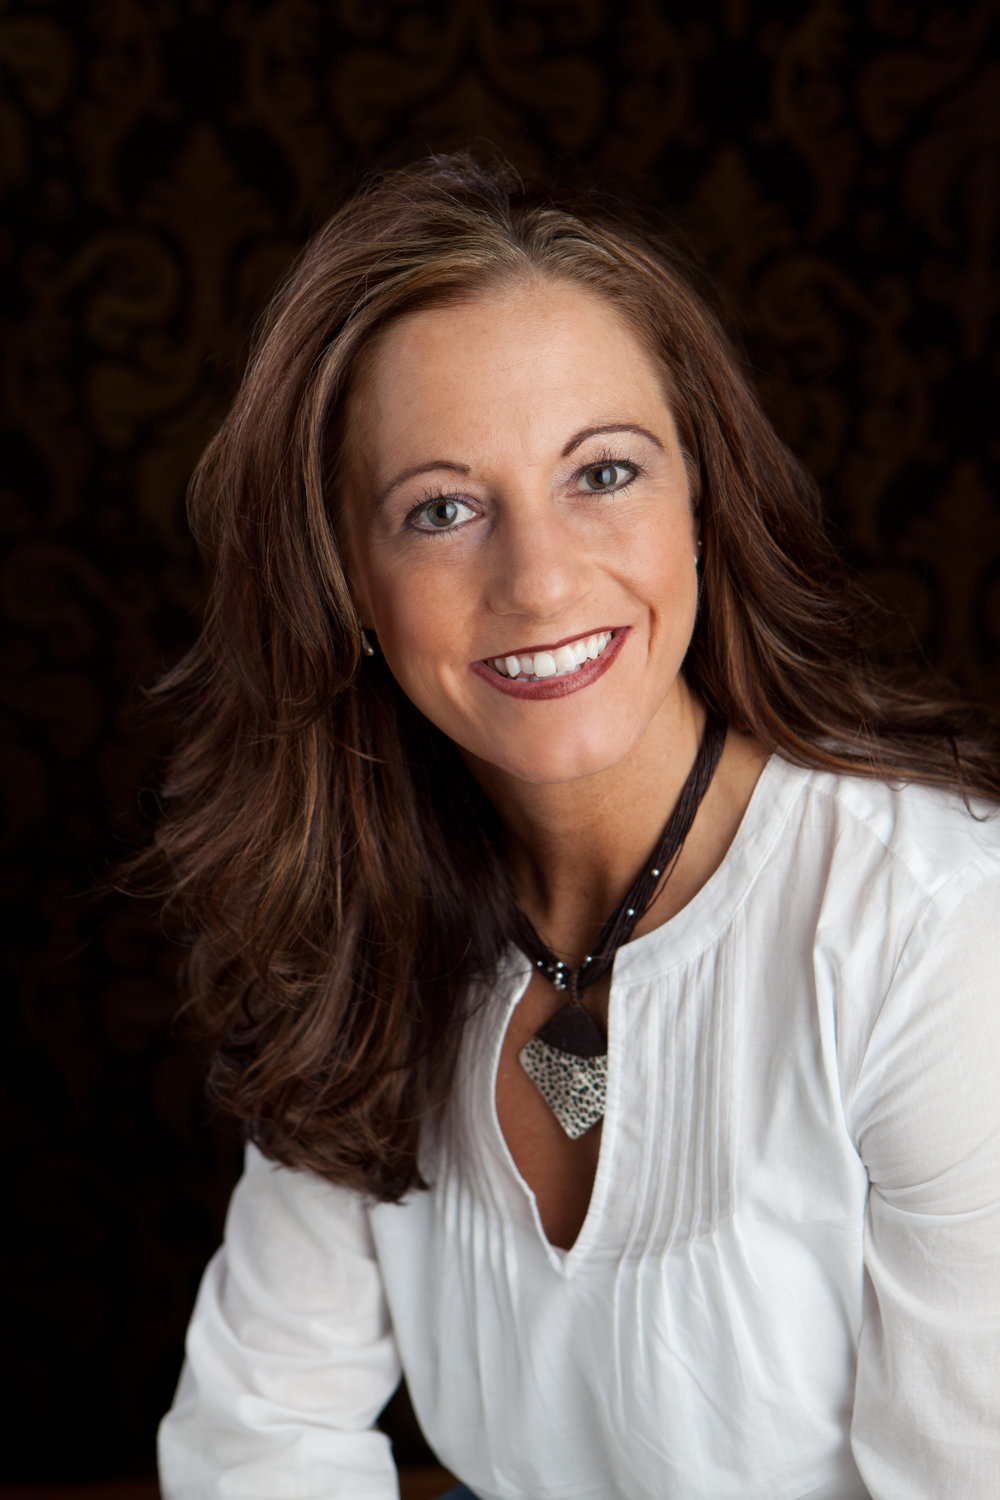 Women's Massage Therapy Headshot, women's corporate business photos